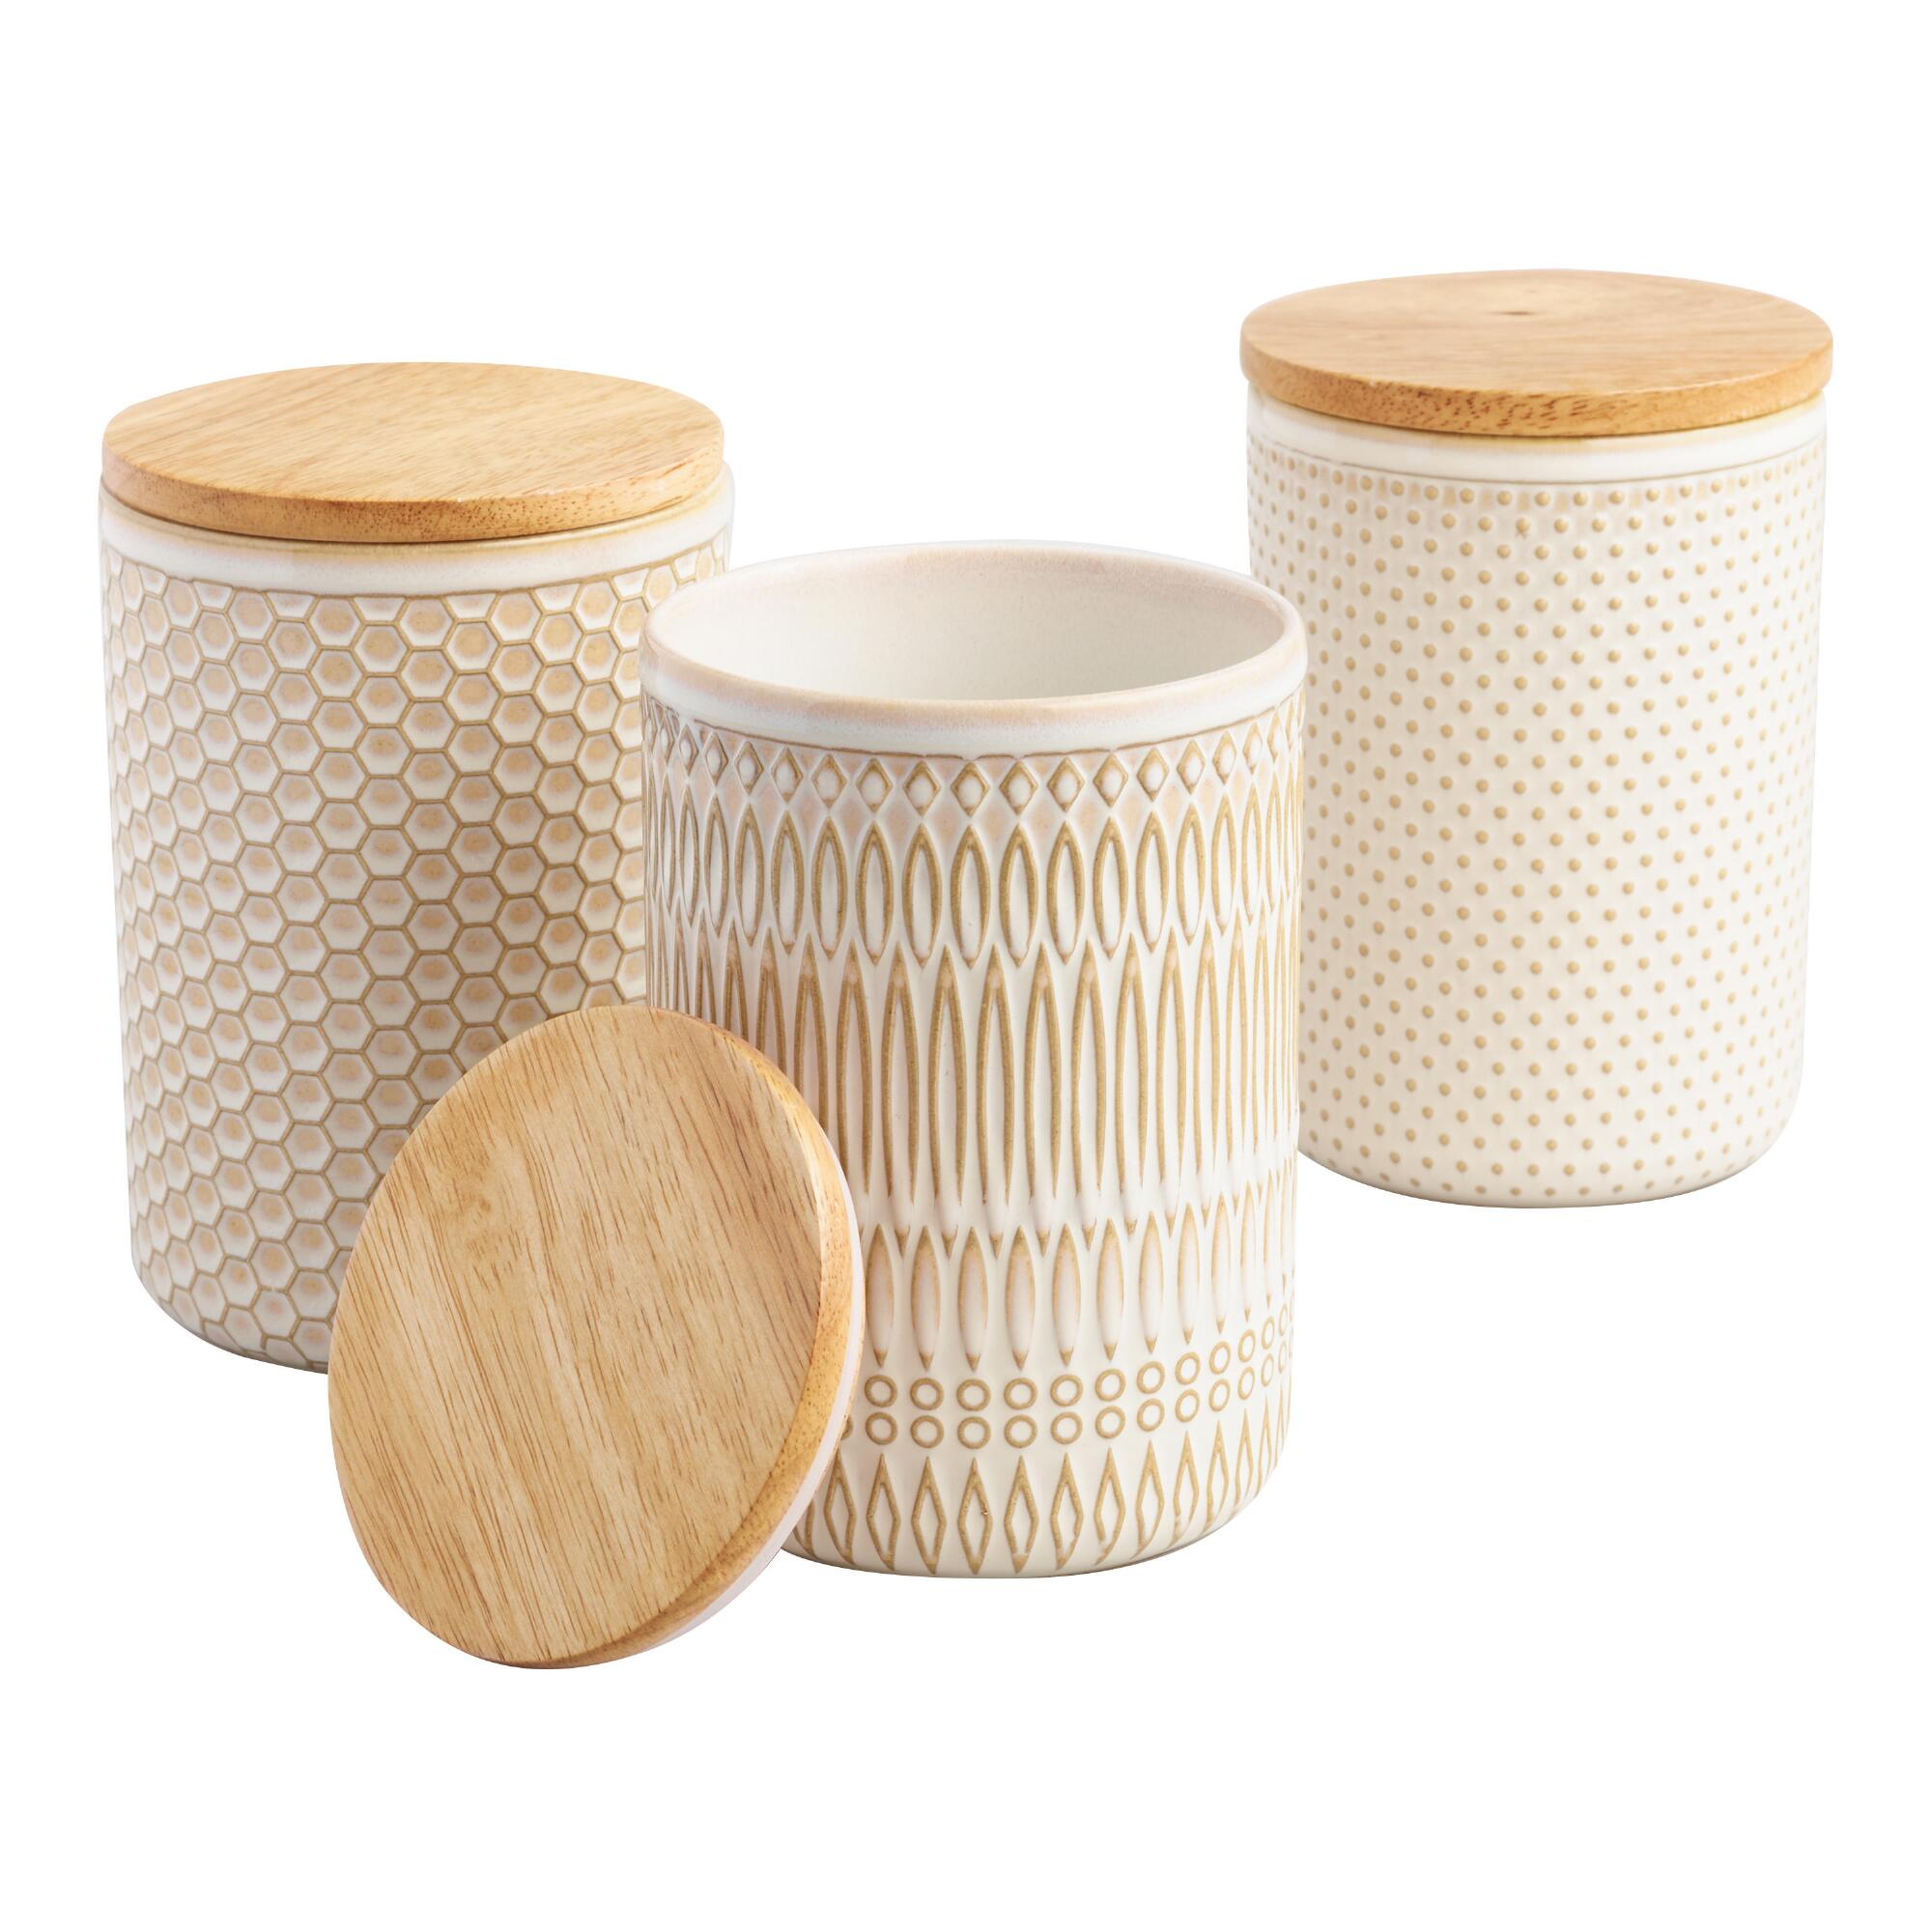 Textured Ceramic Storage Canisters with Wood Lids Set of 3 by World Market